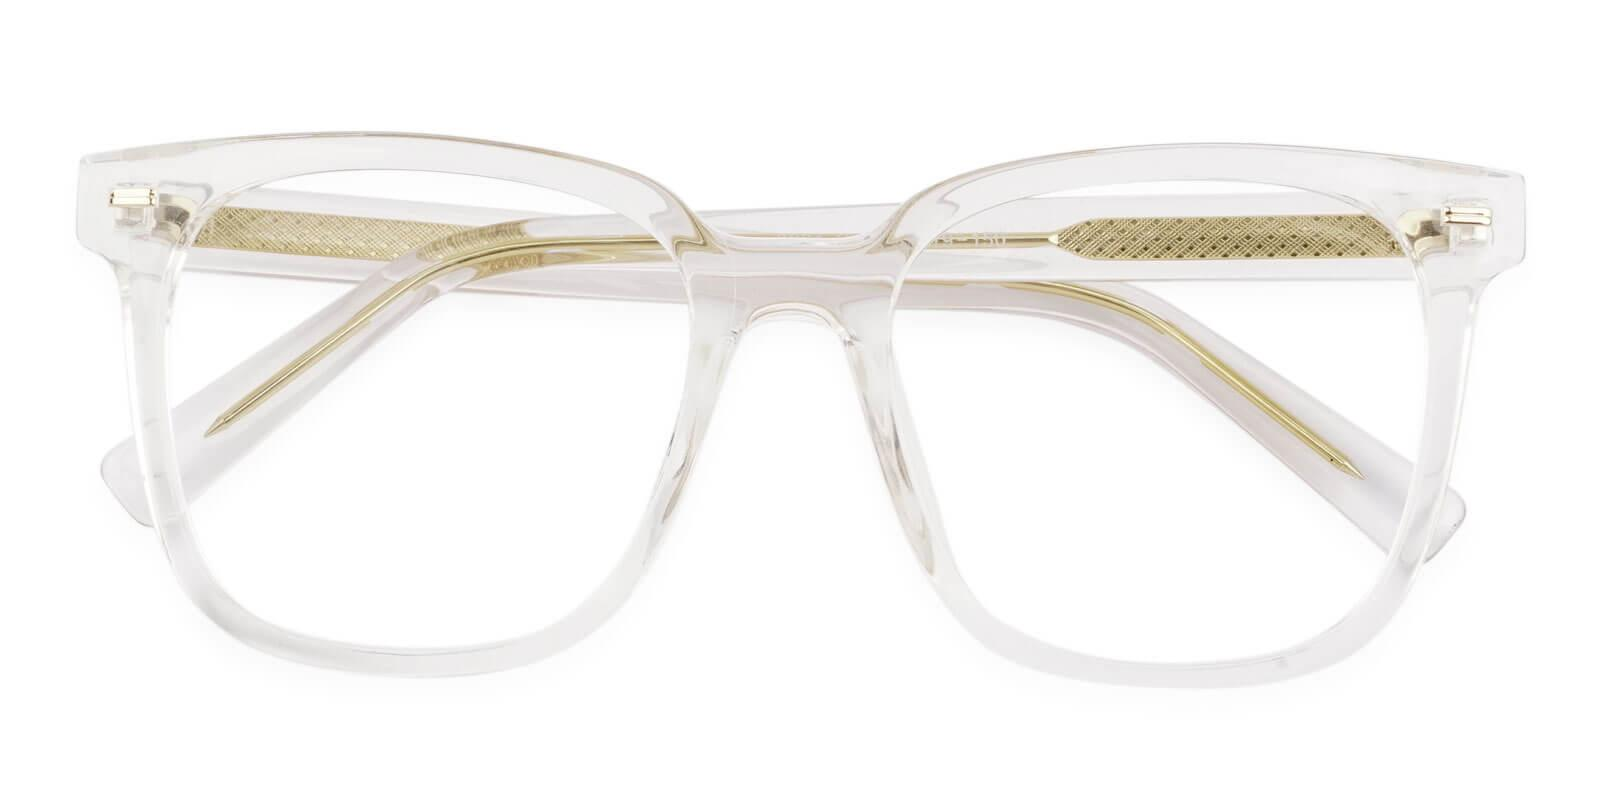 Wings Translucent  Eyeglasses , UniversalBridgeFit Frames from ABBE Glasses